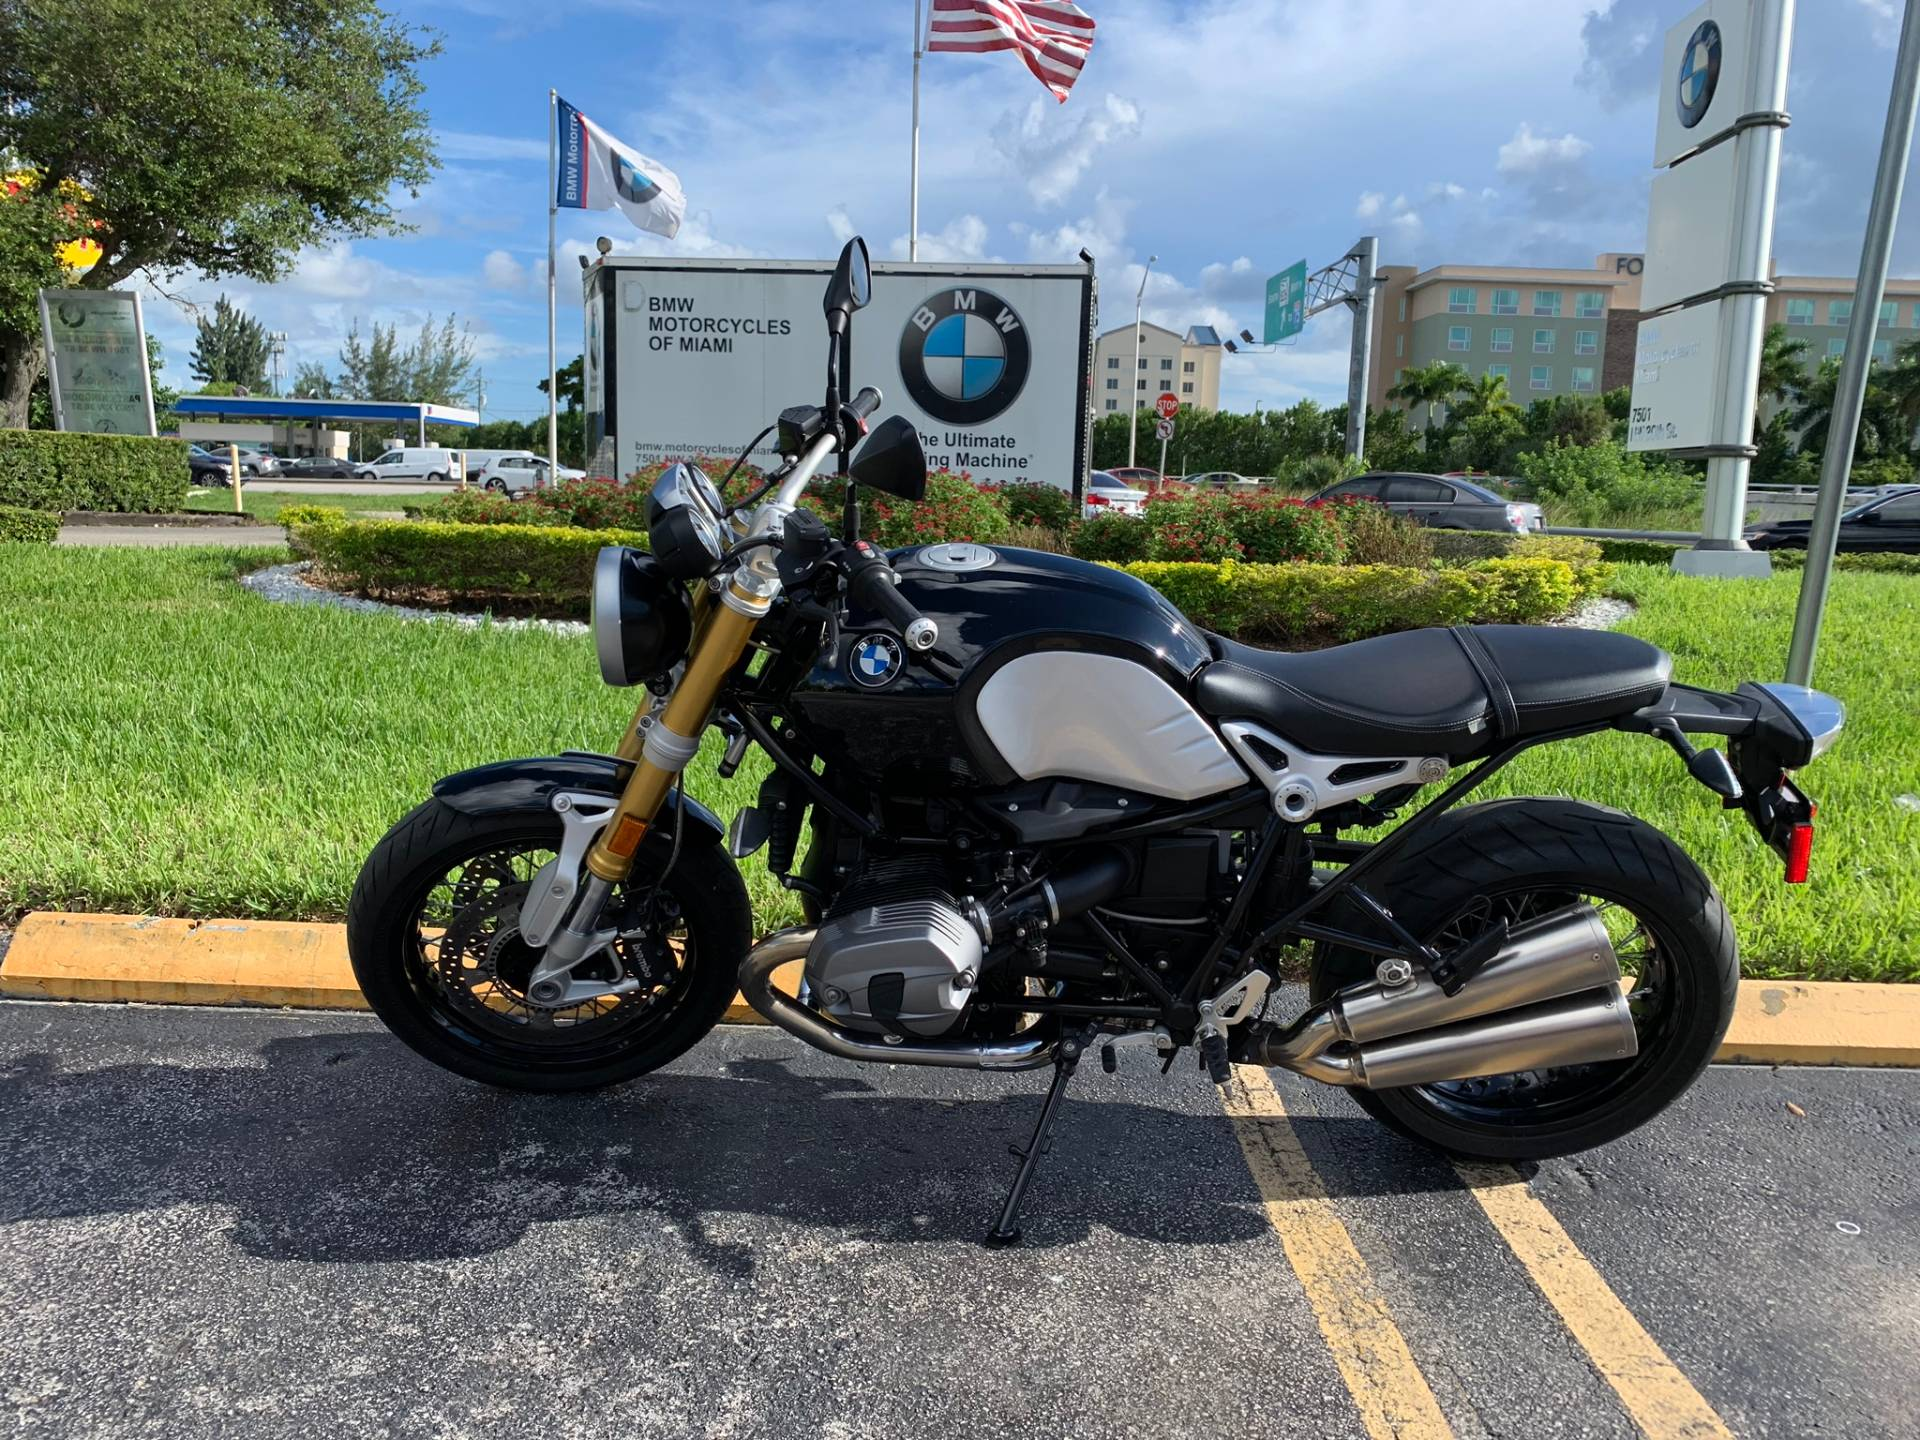 Used 2016 BMW R NineT for sale, BMW for sale, BMW Motorcycle Café Racer, new BMW Caffe, Cafe Racer, BMW. BMW Motorcycles of Miami, Motorcycles of Miami, Motorcycles Miami, New Motorcycles, Used Motorcycles, pre-owned. #BMWMotorcyclesOfMiami #MotorcyclesOfMiami. - Photo 1